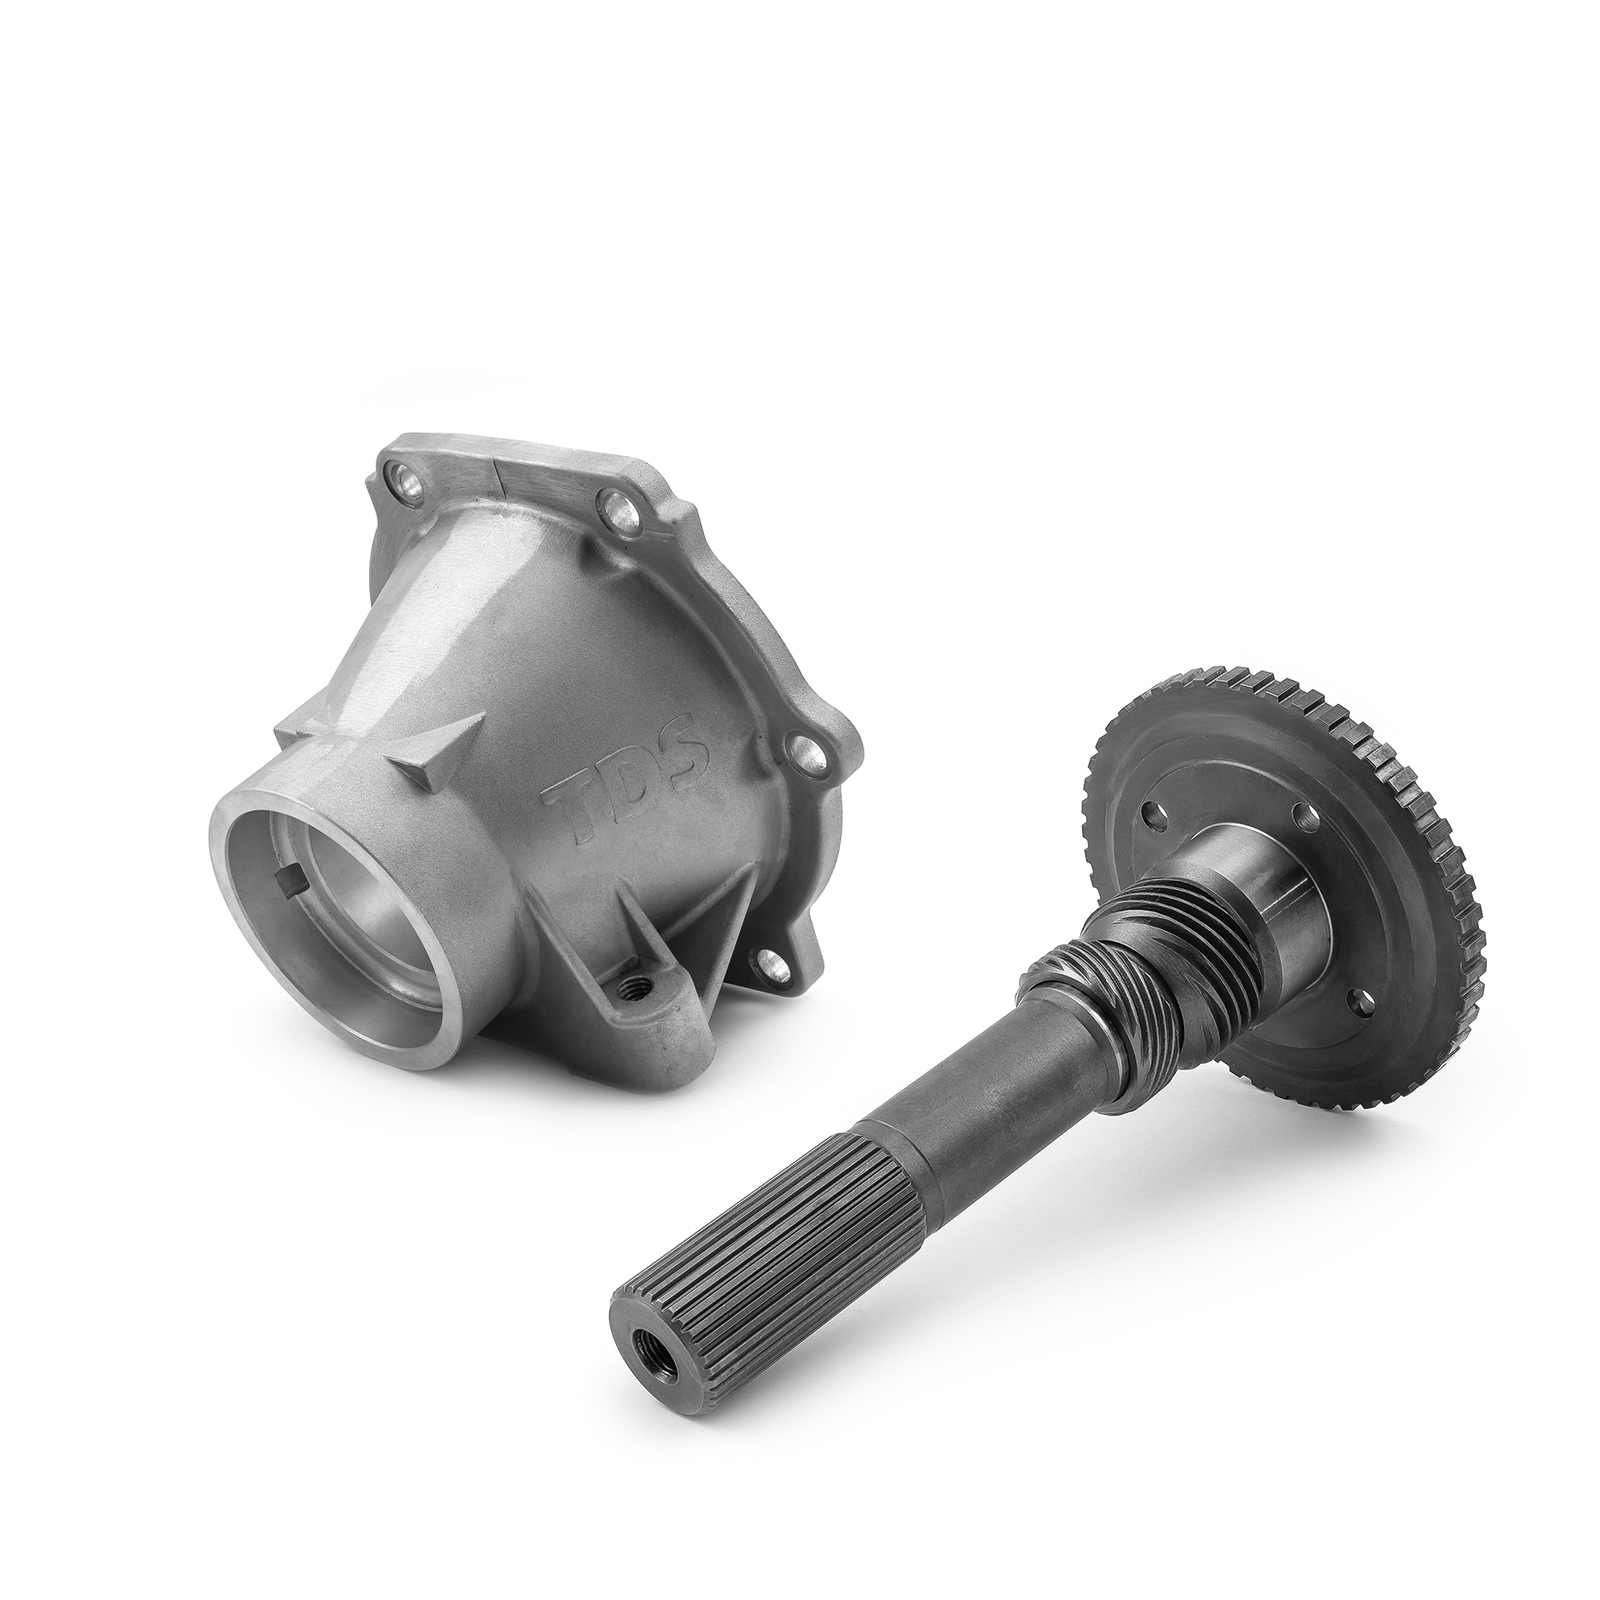 Turbo 400 TH400 Standard Length Output Shaft and Tail Housing Combo